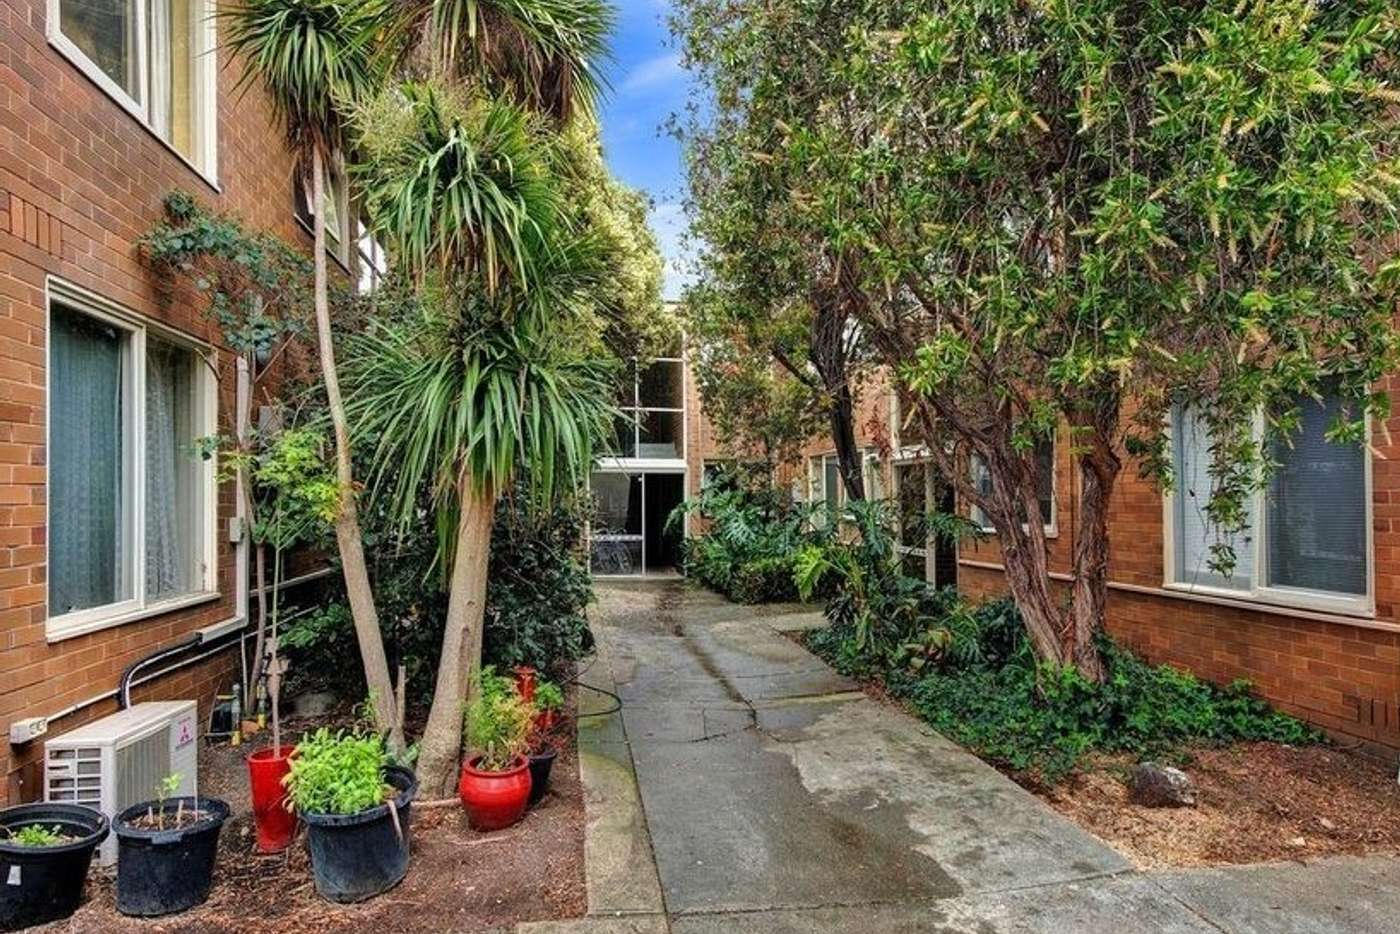 Main view of Homely apartment listing, 36/02 Centennial Ave, Brunswick West VIC 3055